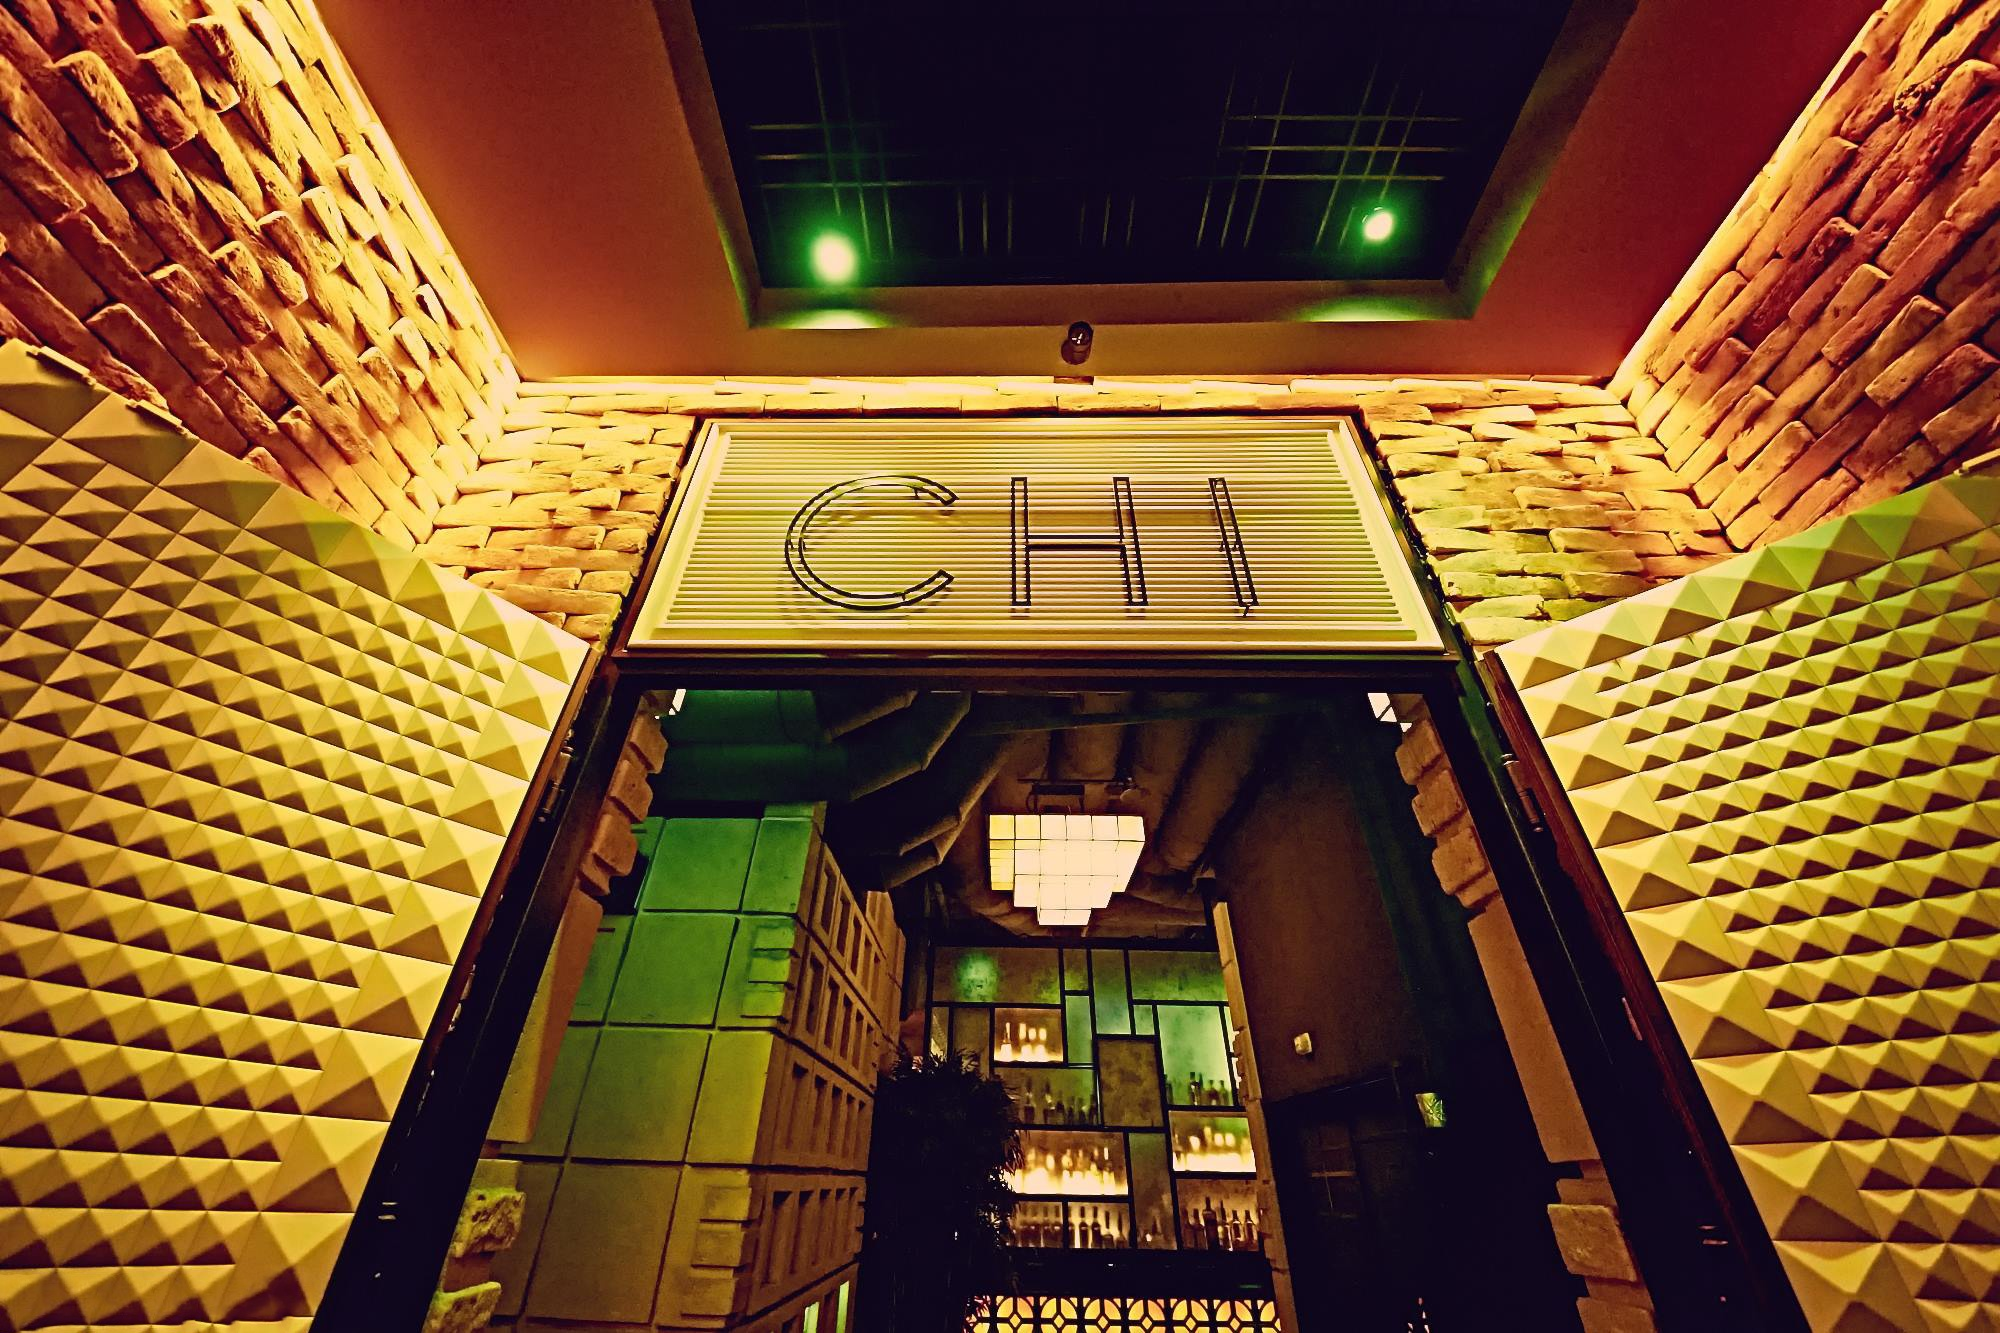 Chi by Decadence house - VIP night club in Kyiv